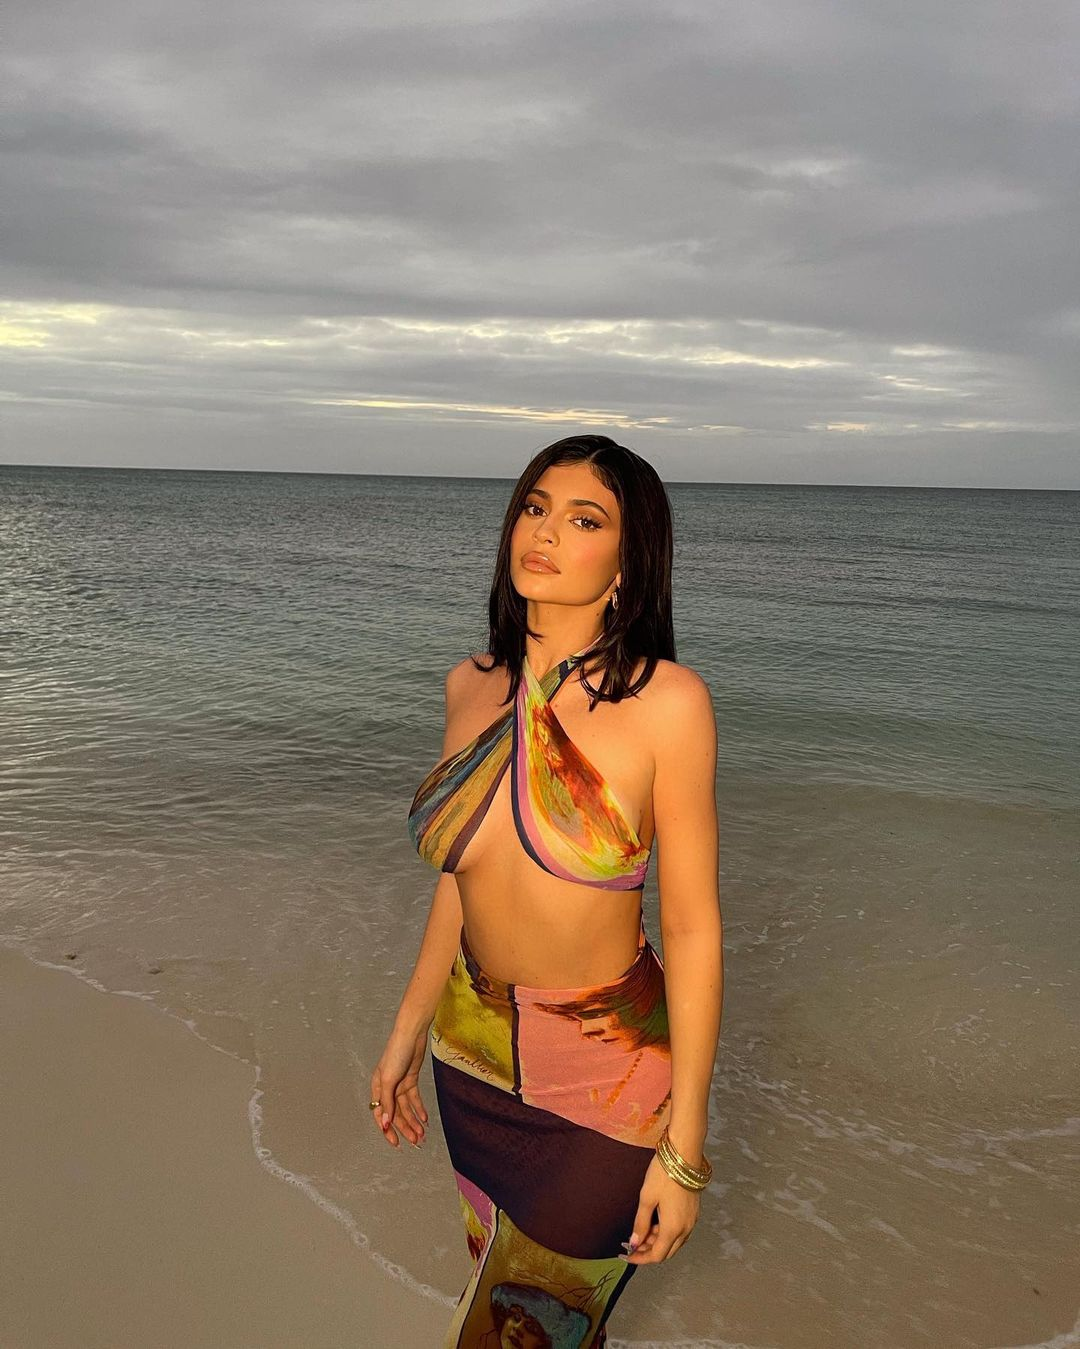 Kylie Jenner donning a figure hugging Jean Paul Gaultier dress with criss cross back and a halter neck